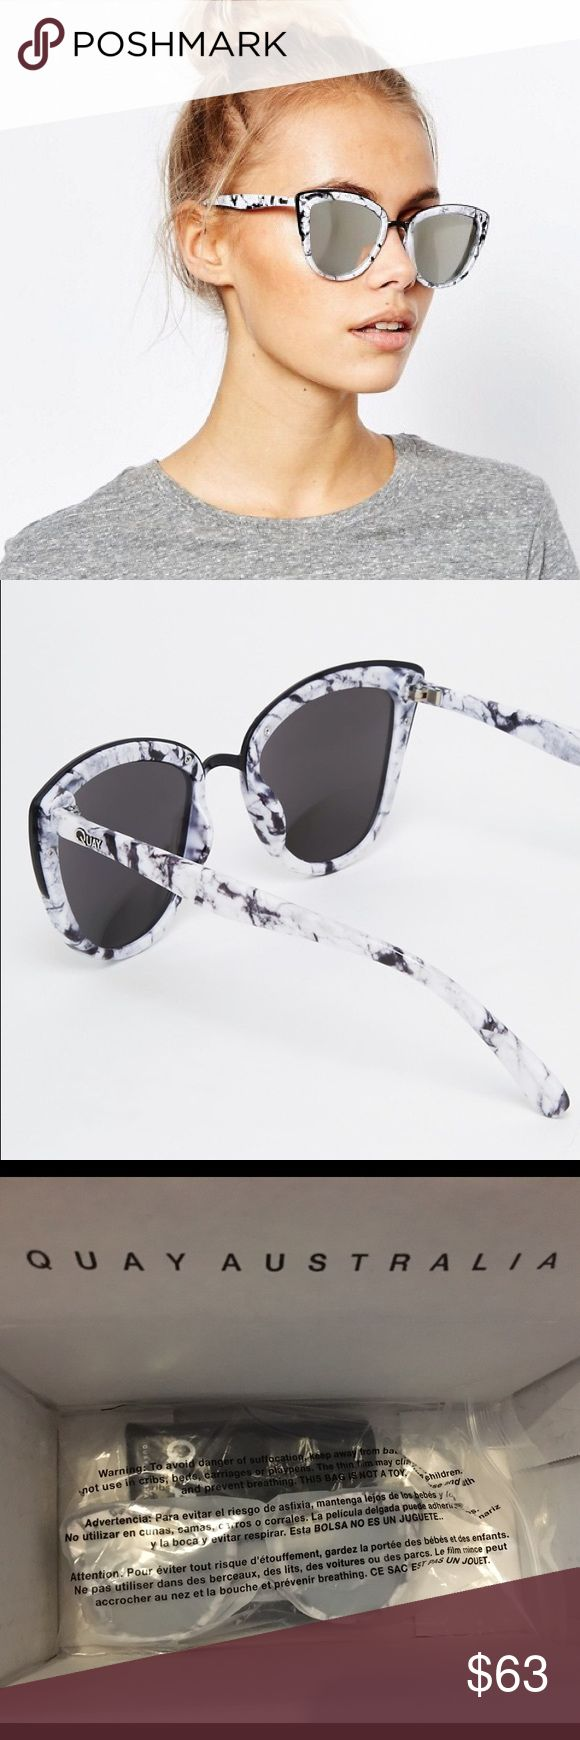 Quay Australia My Girl Marble Sunglasses 💟Quay My Girl 💟Mirrored sunglasses. Marble frame silver lens. 💟Comes with soft case 💟Brand new  🚫🚫TRADES/HOLDS🚫🚫  💰PRICE FIRM💰  🐣Please help me keep my closet friendly & drama free. If you're unhappy with my listing just purchase elsewhere🐣 💟Happy Poshing💟 Quay Australia Accessories Sunglasses